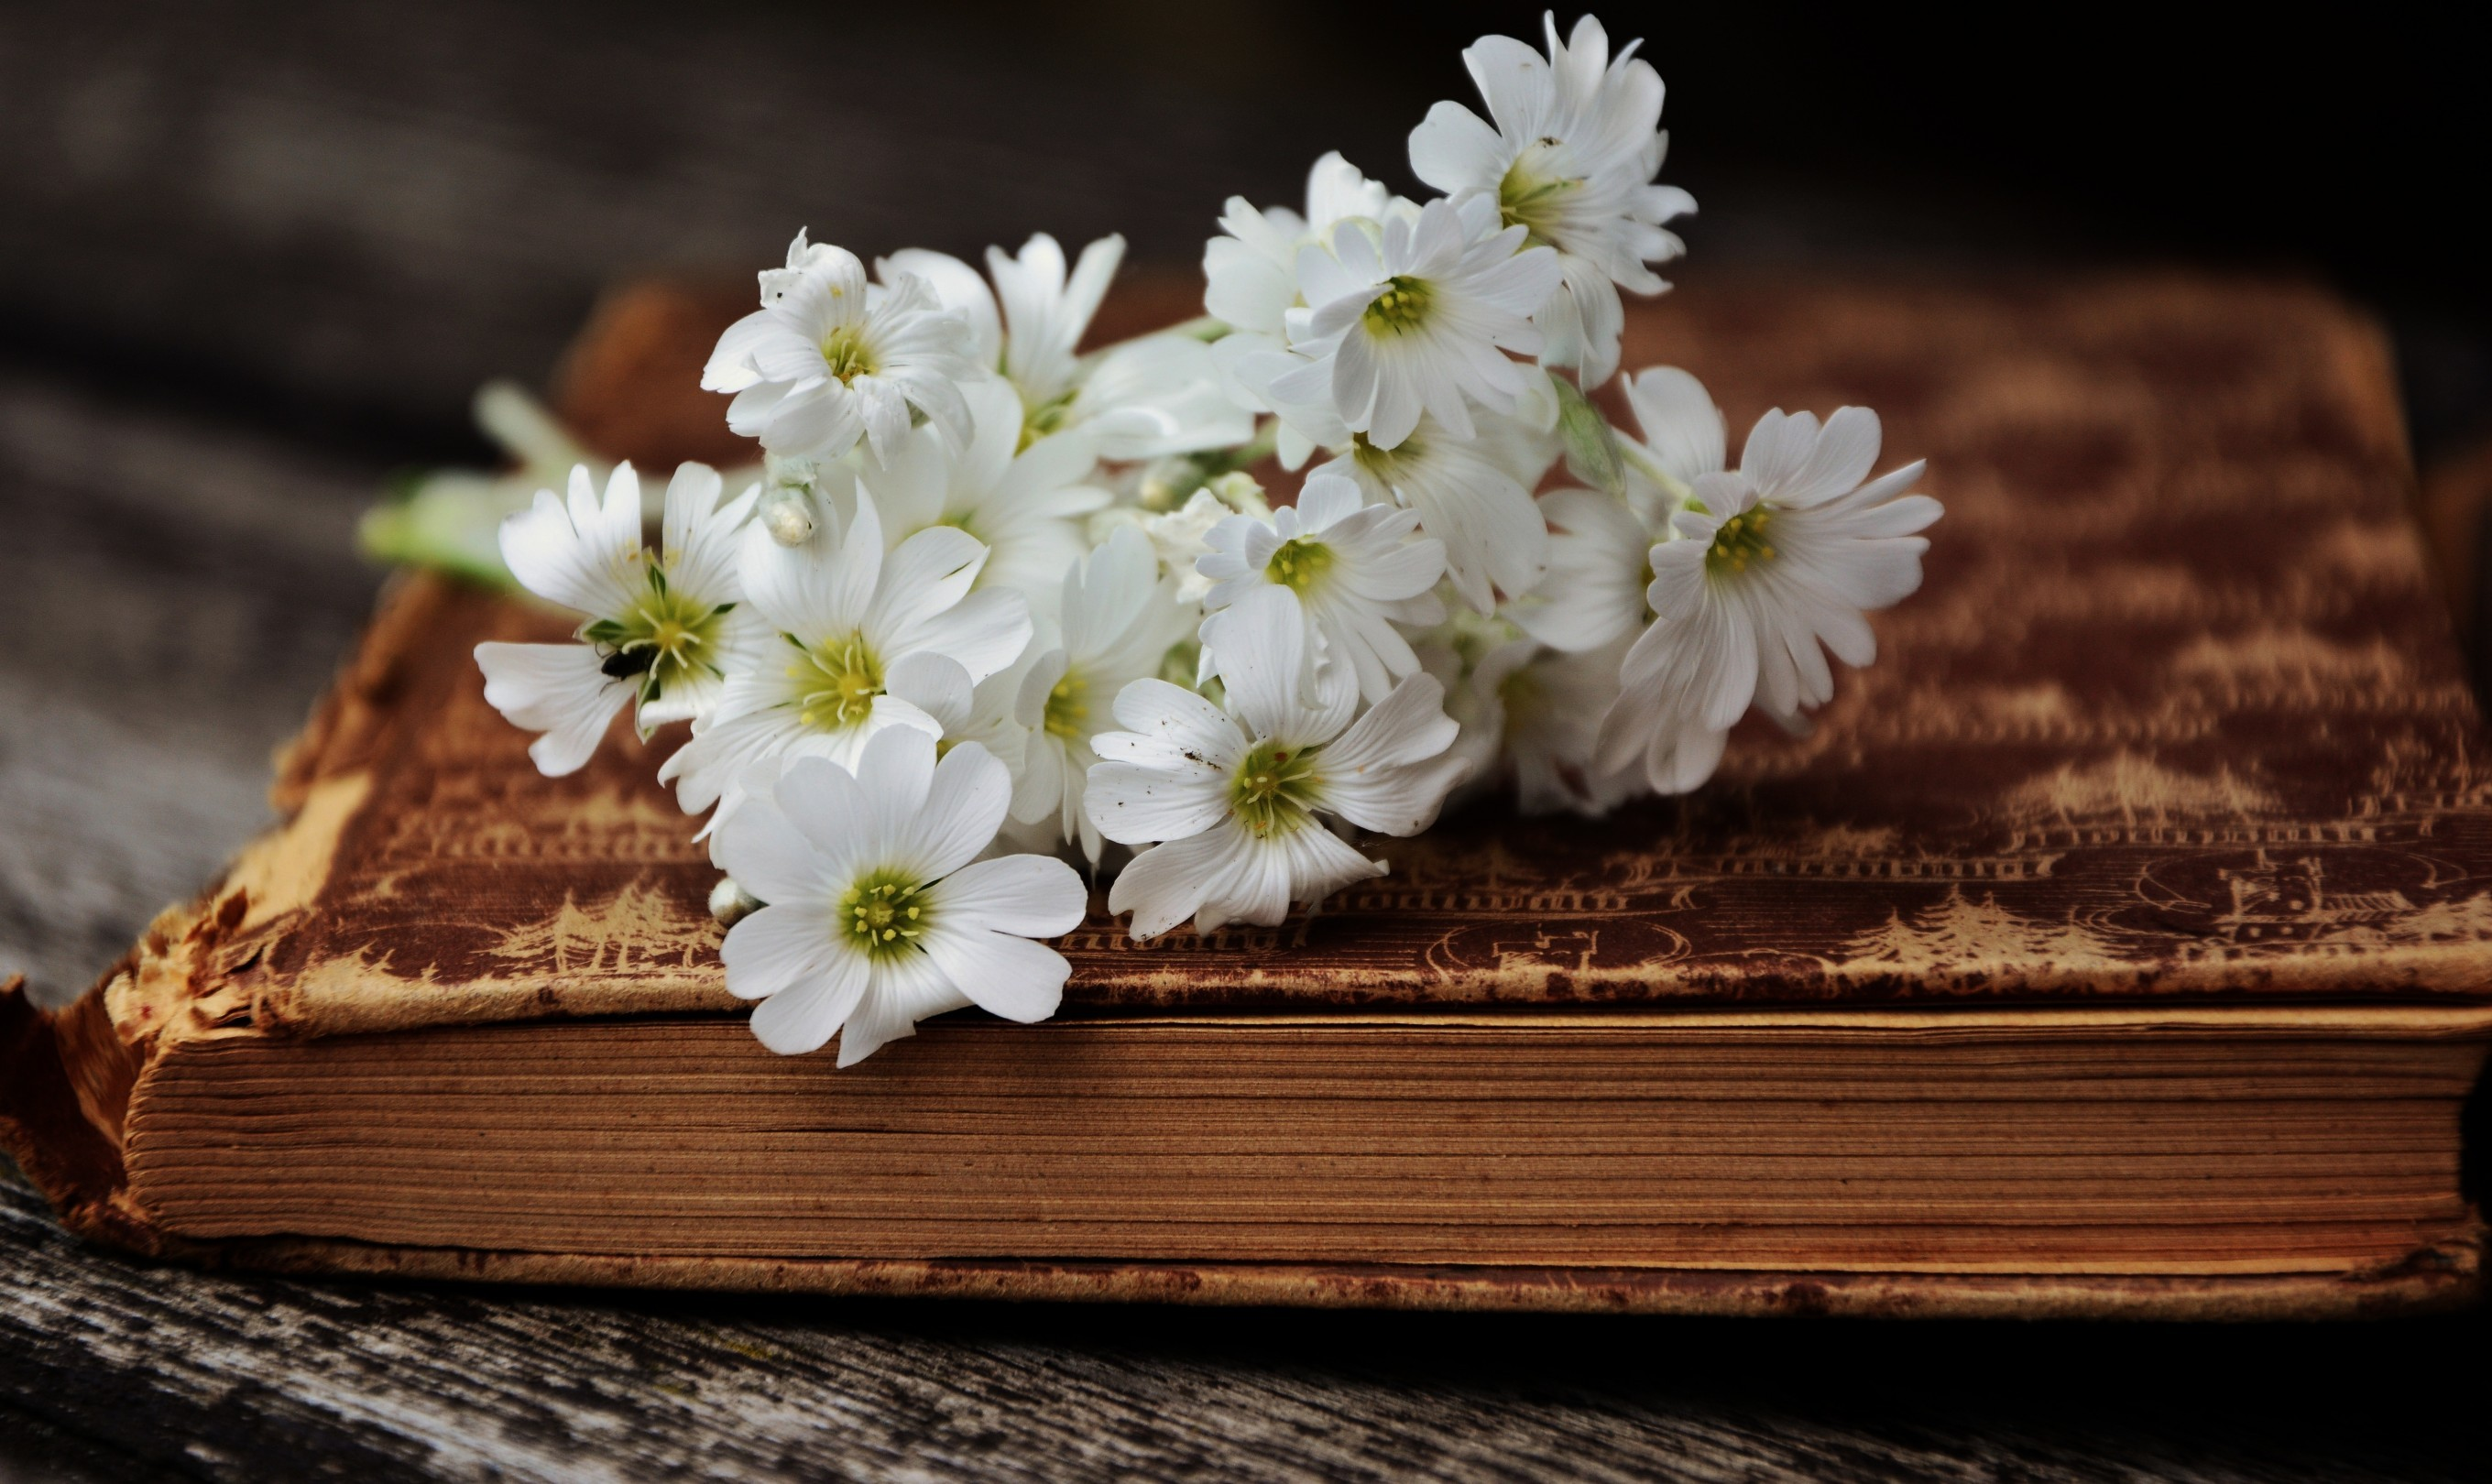 White Flowers, Old Book - Photography Vintage Wallpaper Hd - HD Wallpaper